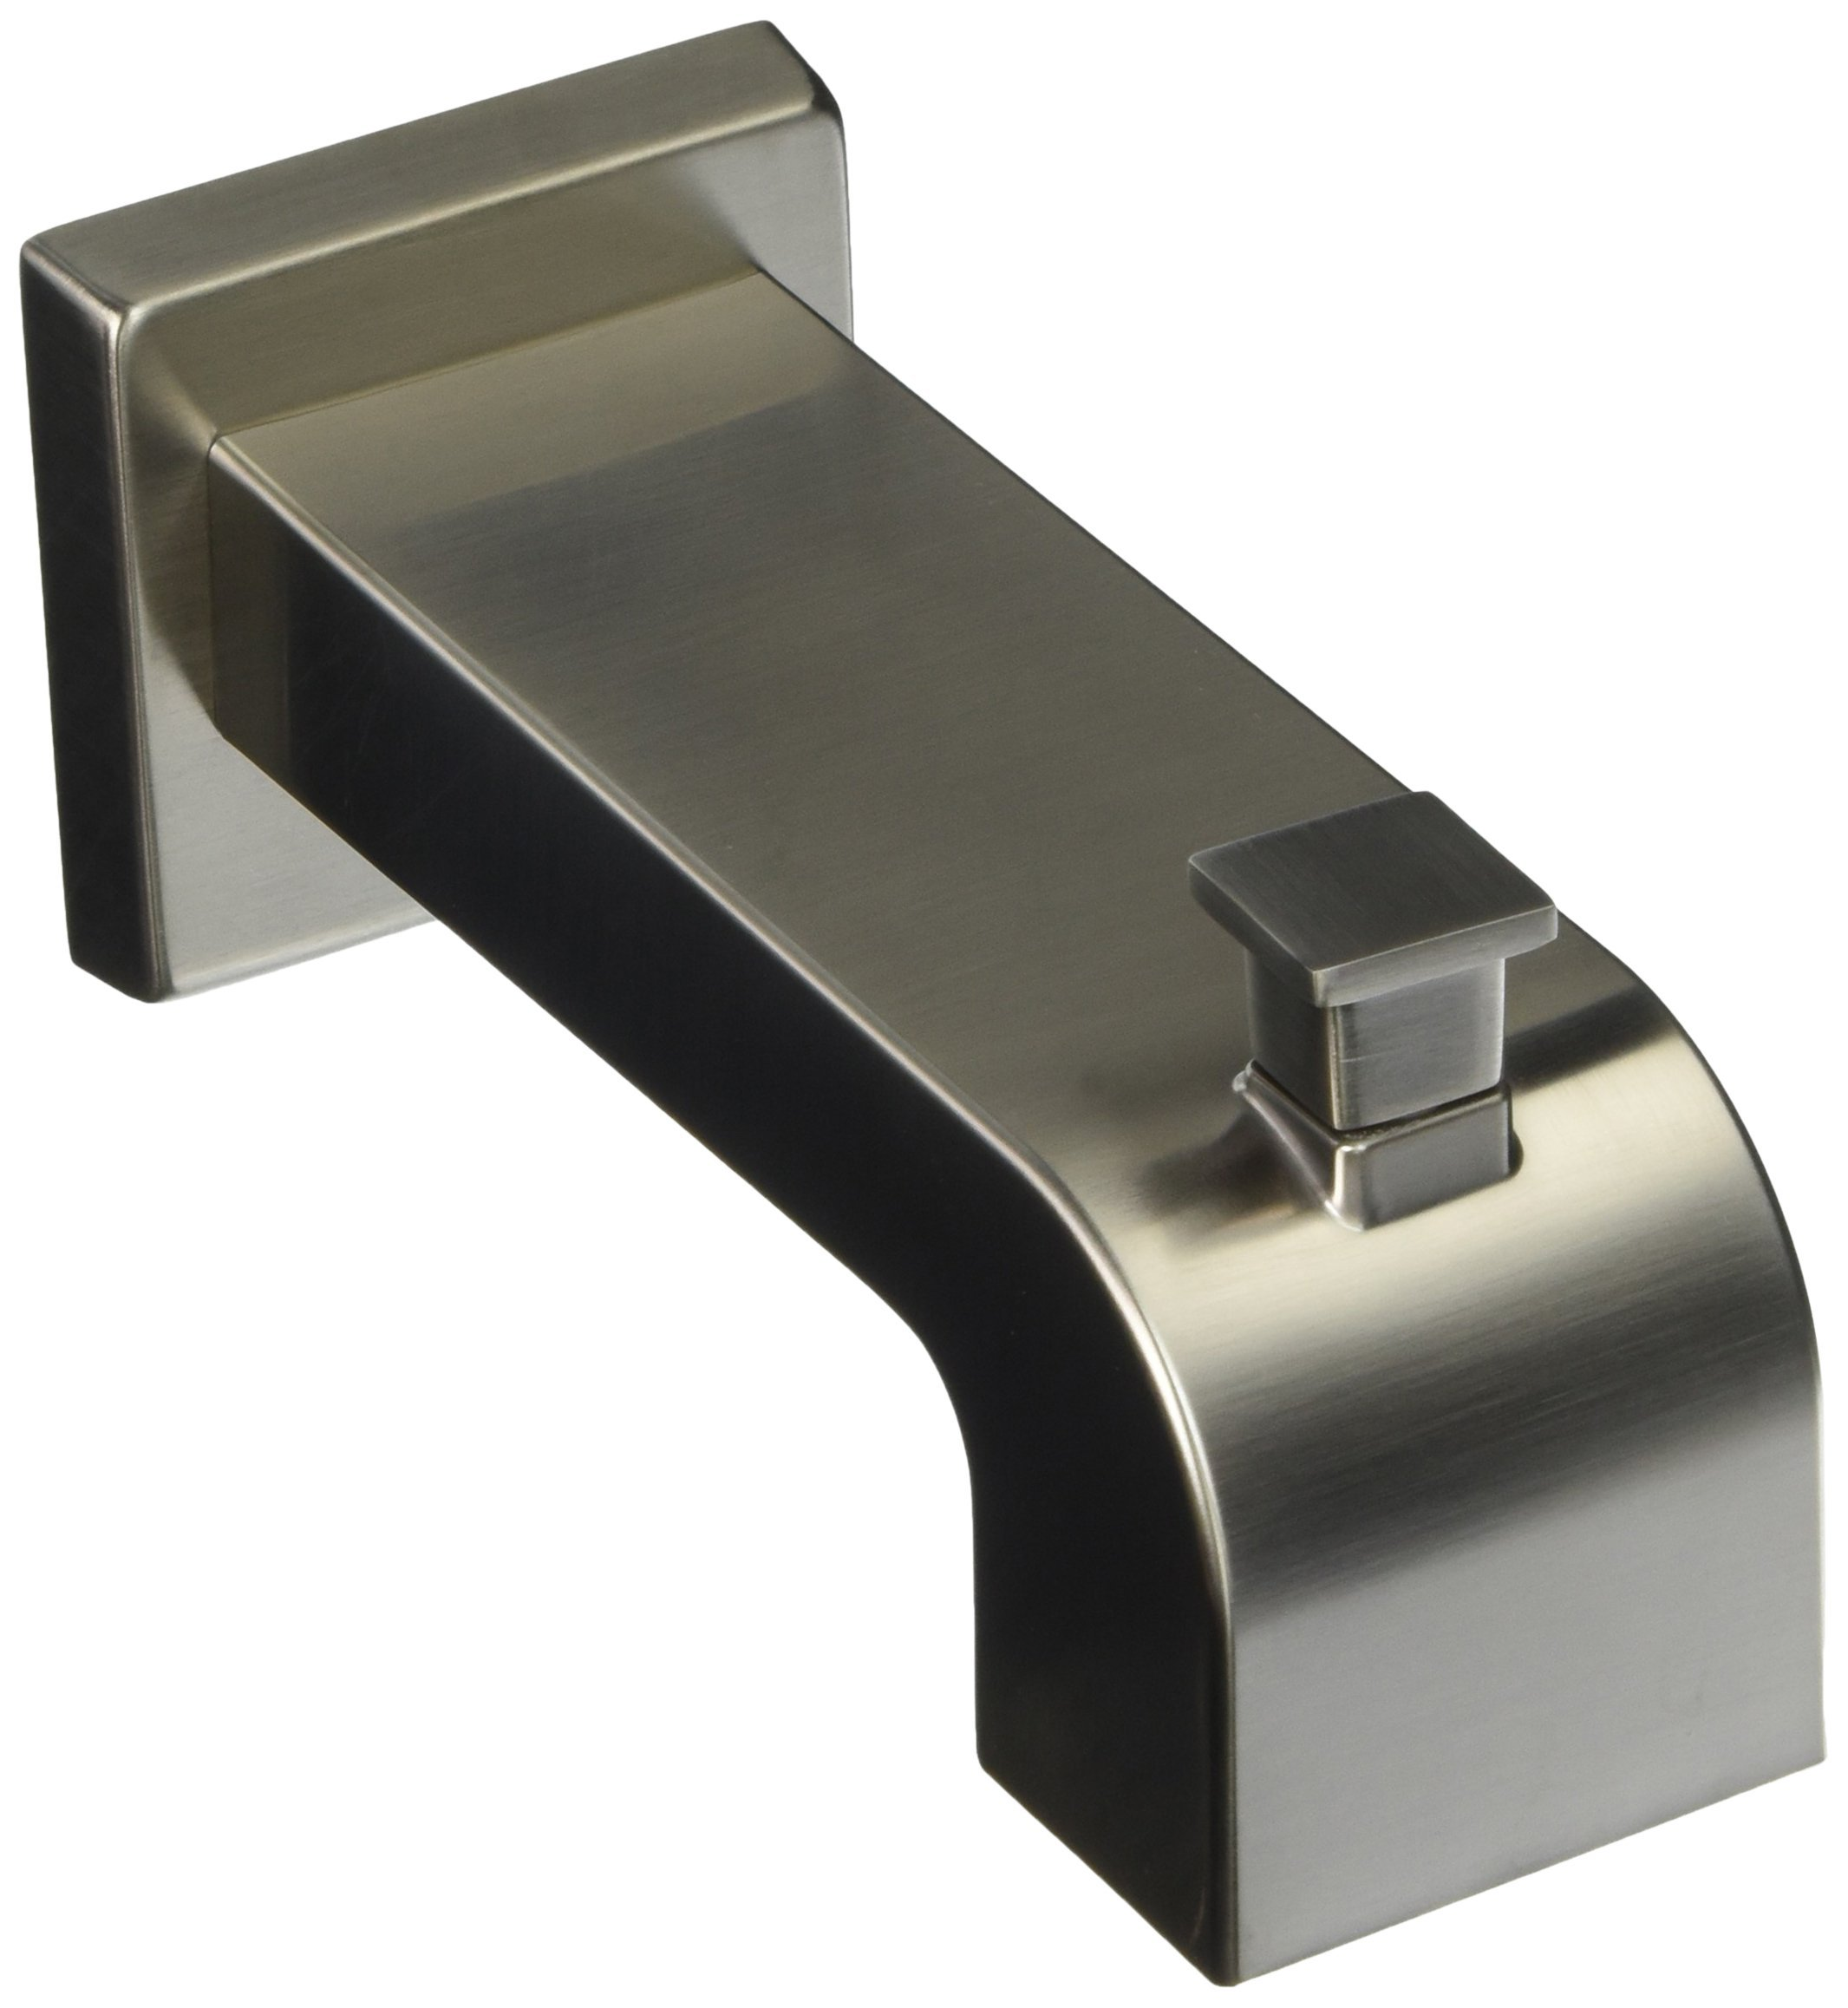 Delta RP53419SS Arzo Tub Spout - Pull-Up Diverter, Stainless